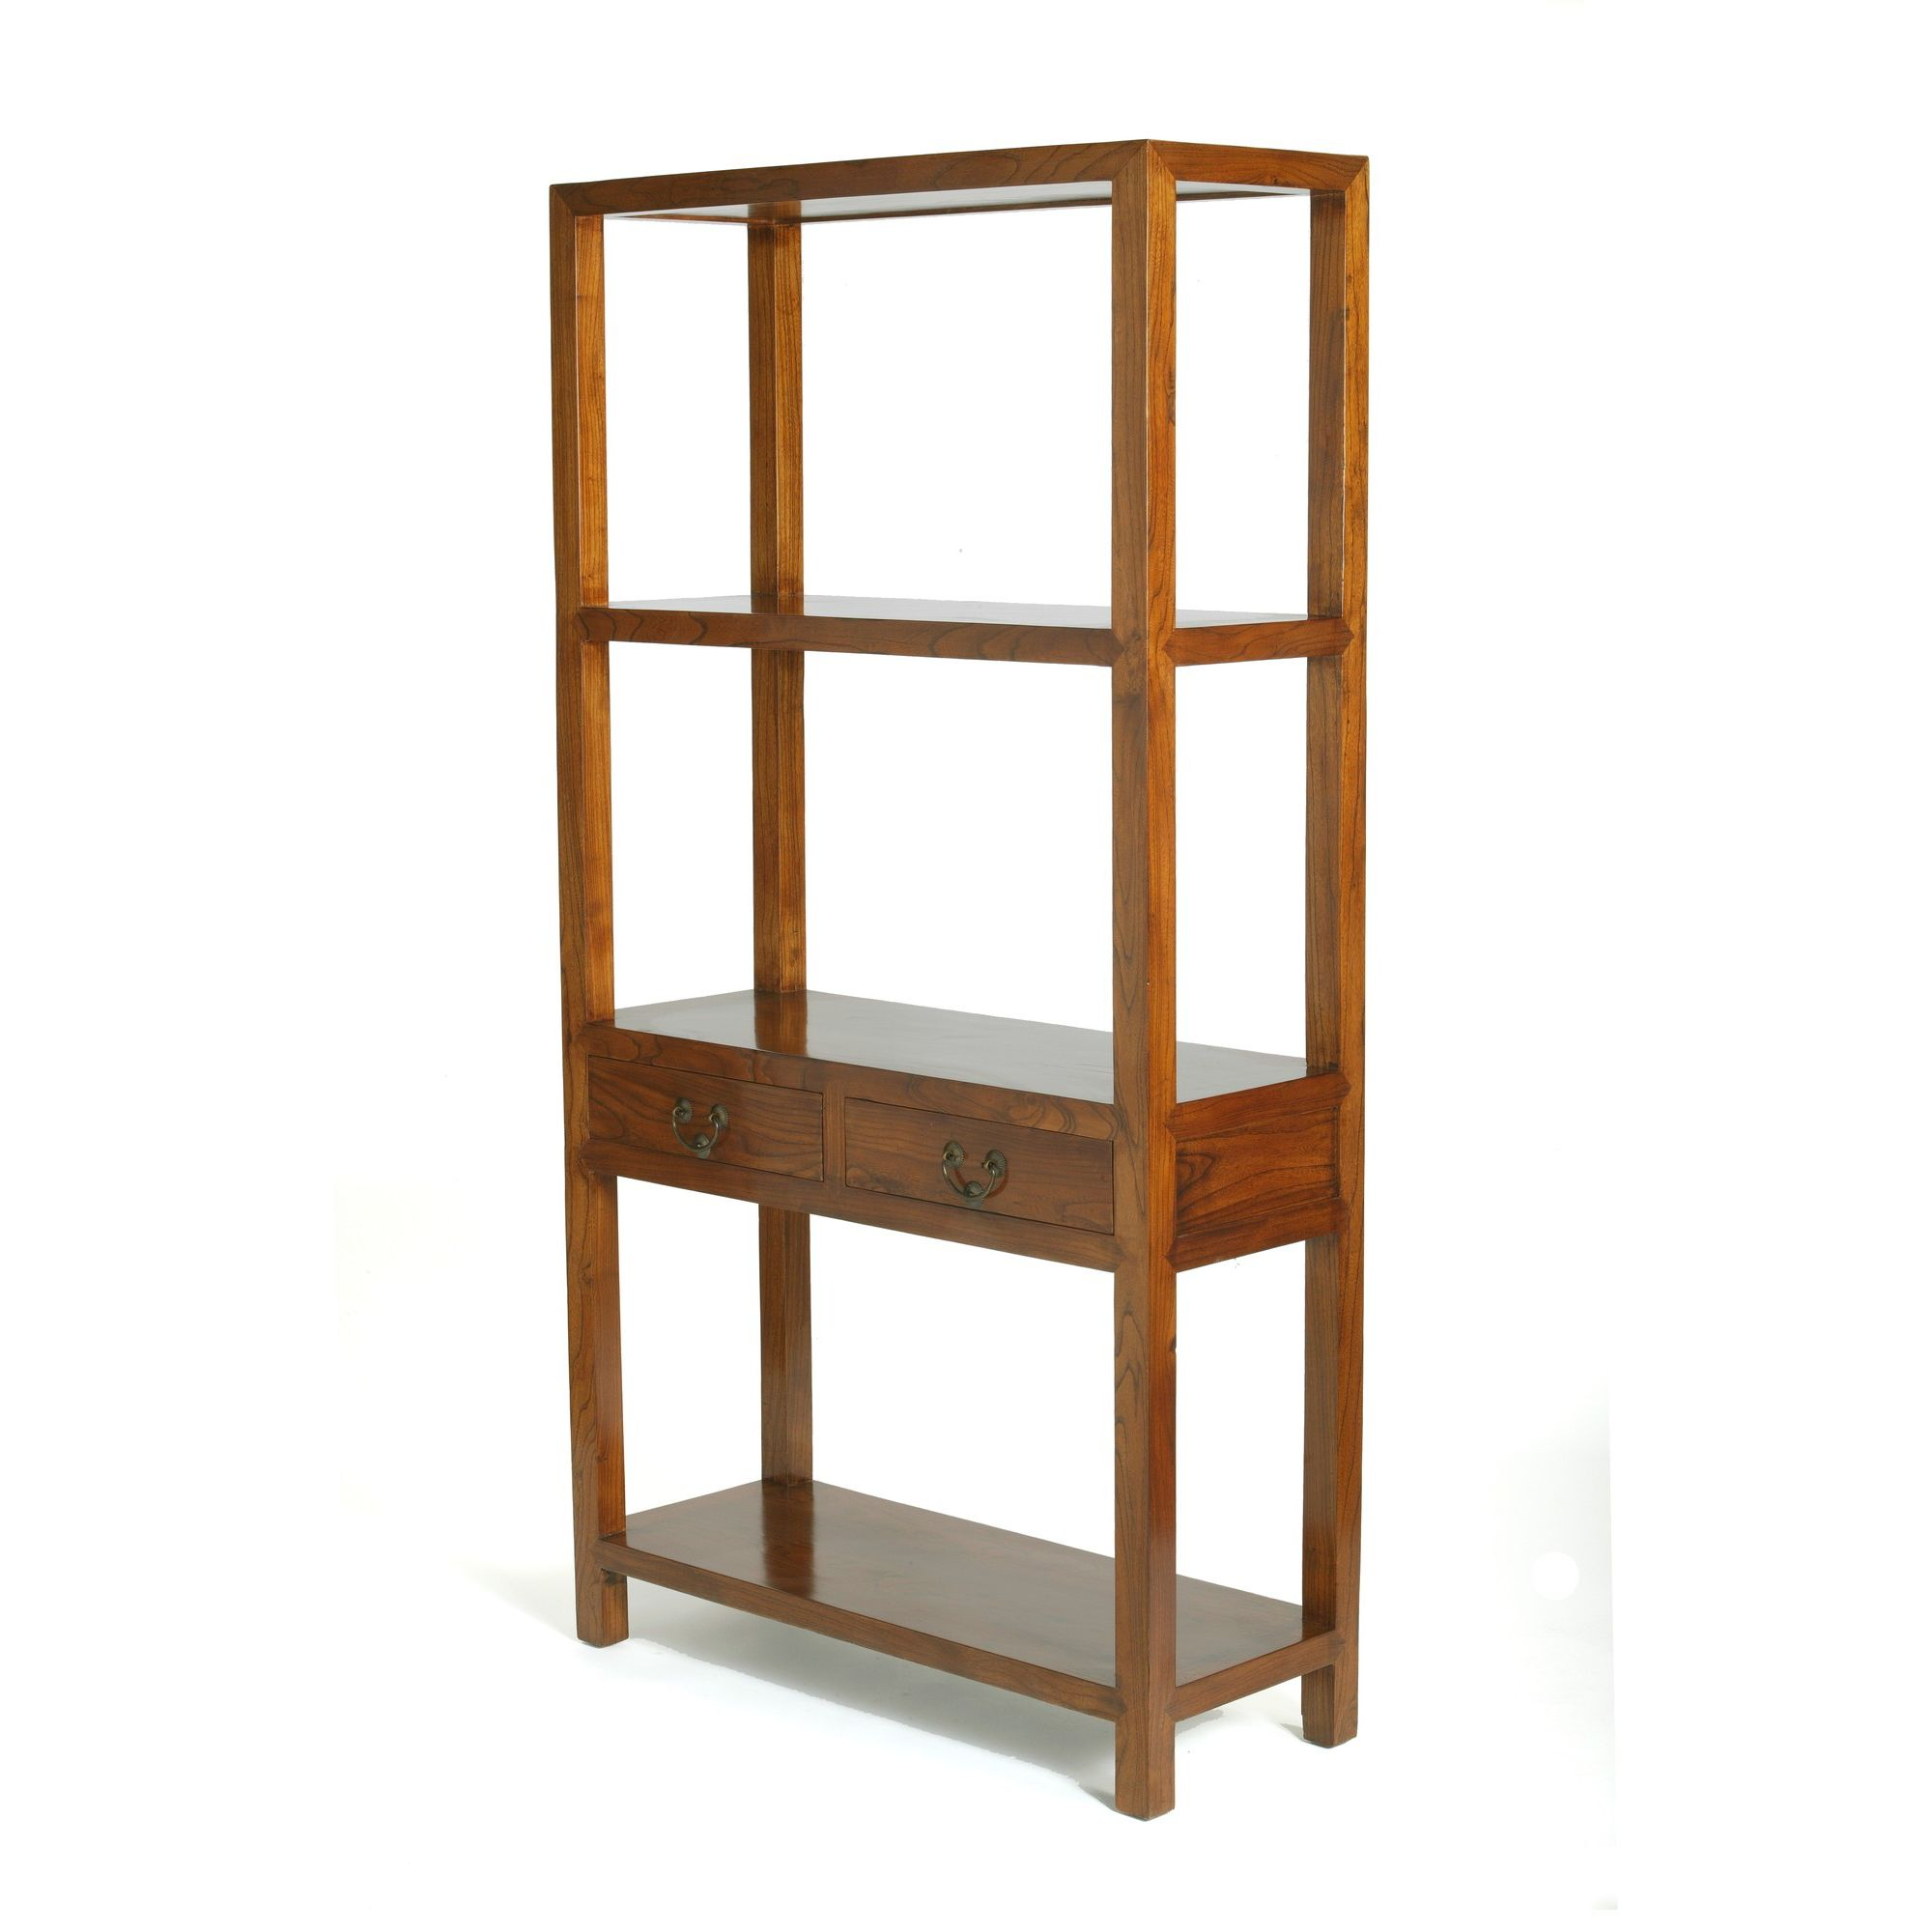 Shimu Chinese Classical Ming Bookshelf - Warm Elm at Tesco Direct